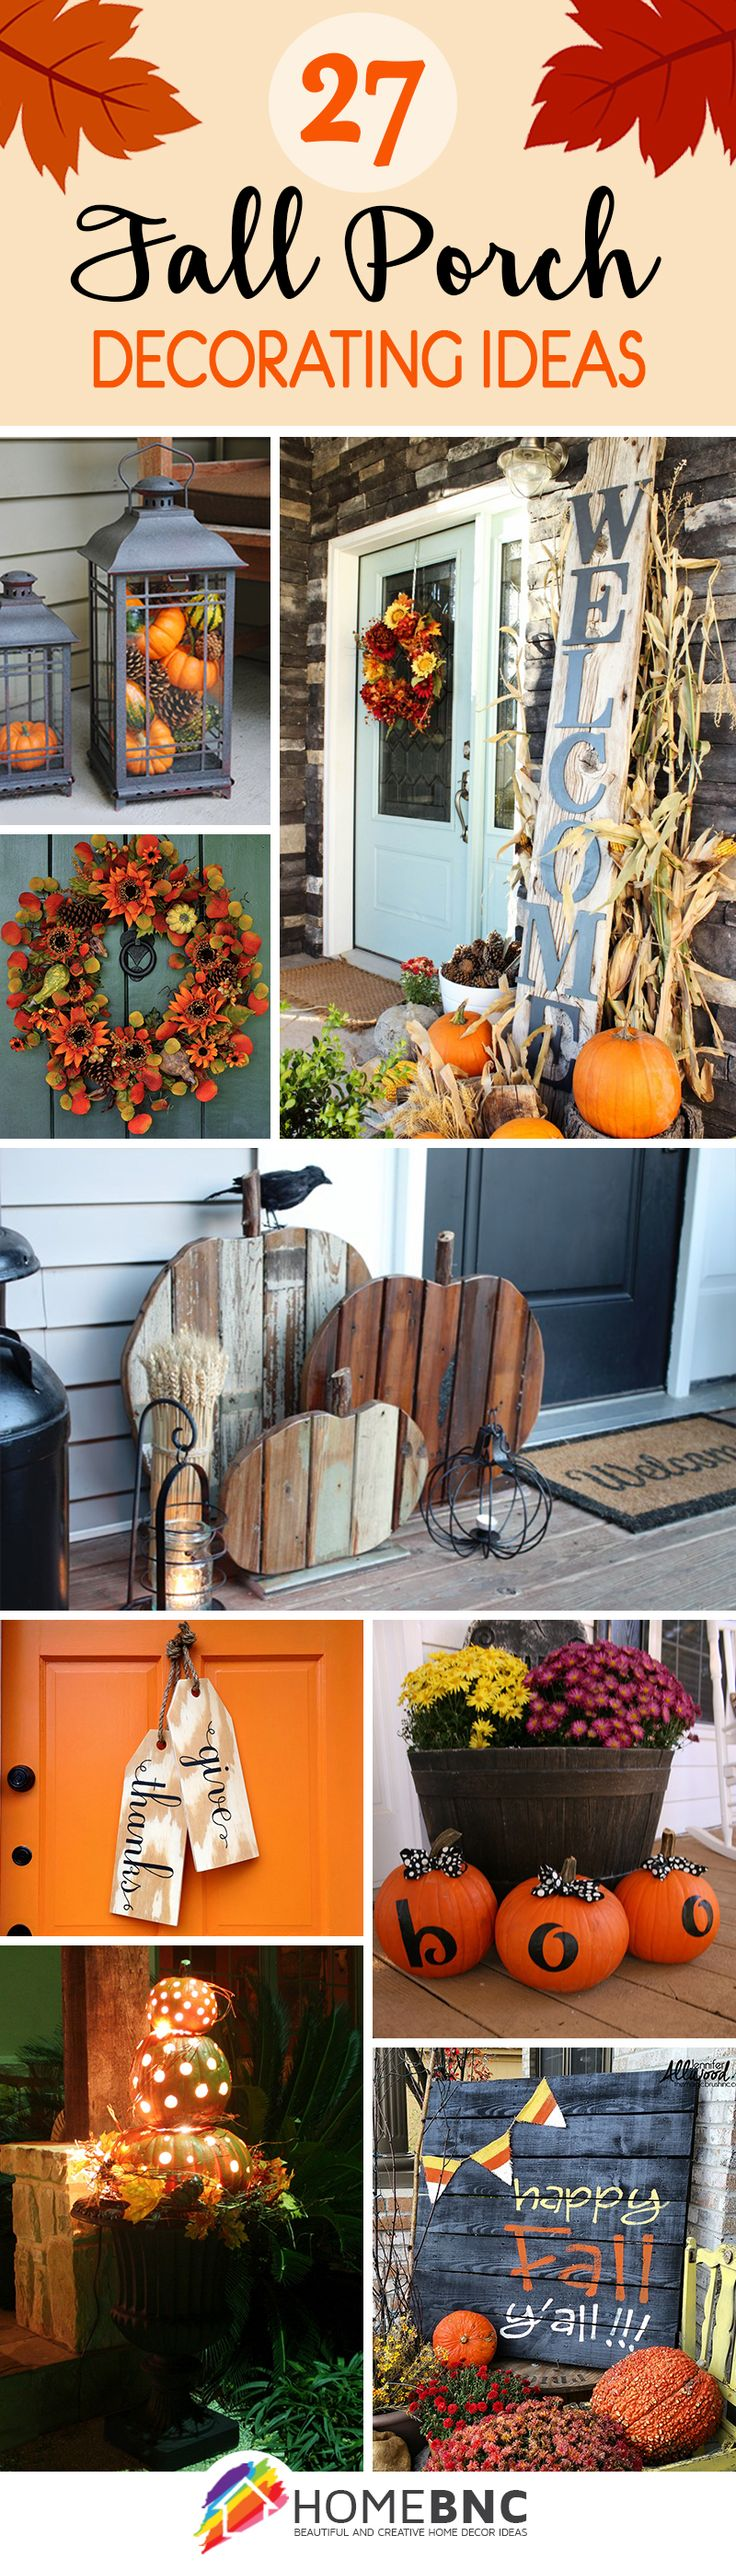 best 25 fall door decorations ideas on pinterest fall door wreaths door monogram and fall burlap wreaths for front door - Fall Halloween Decorations